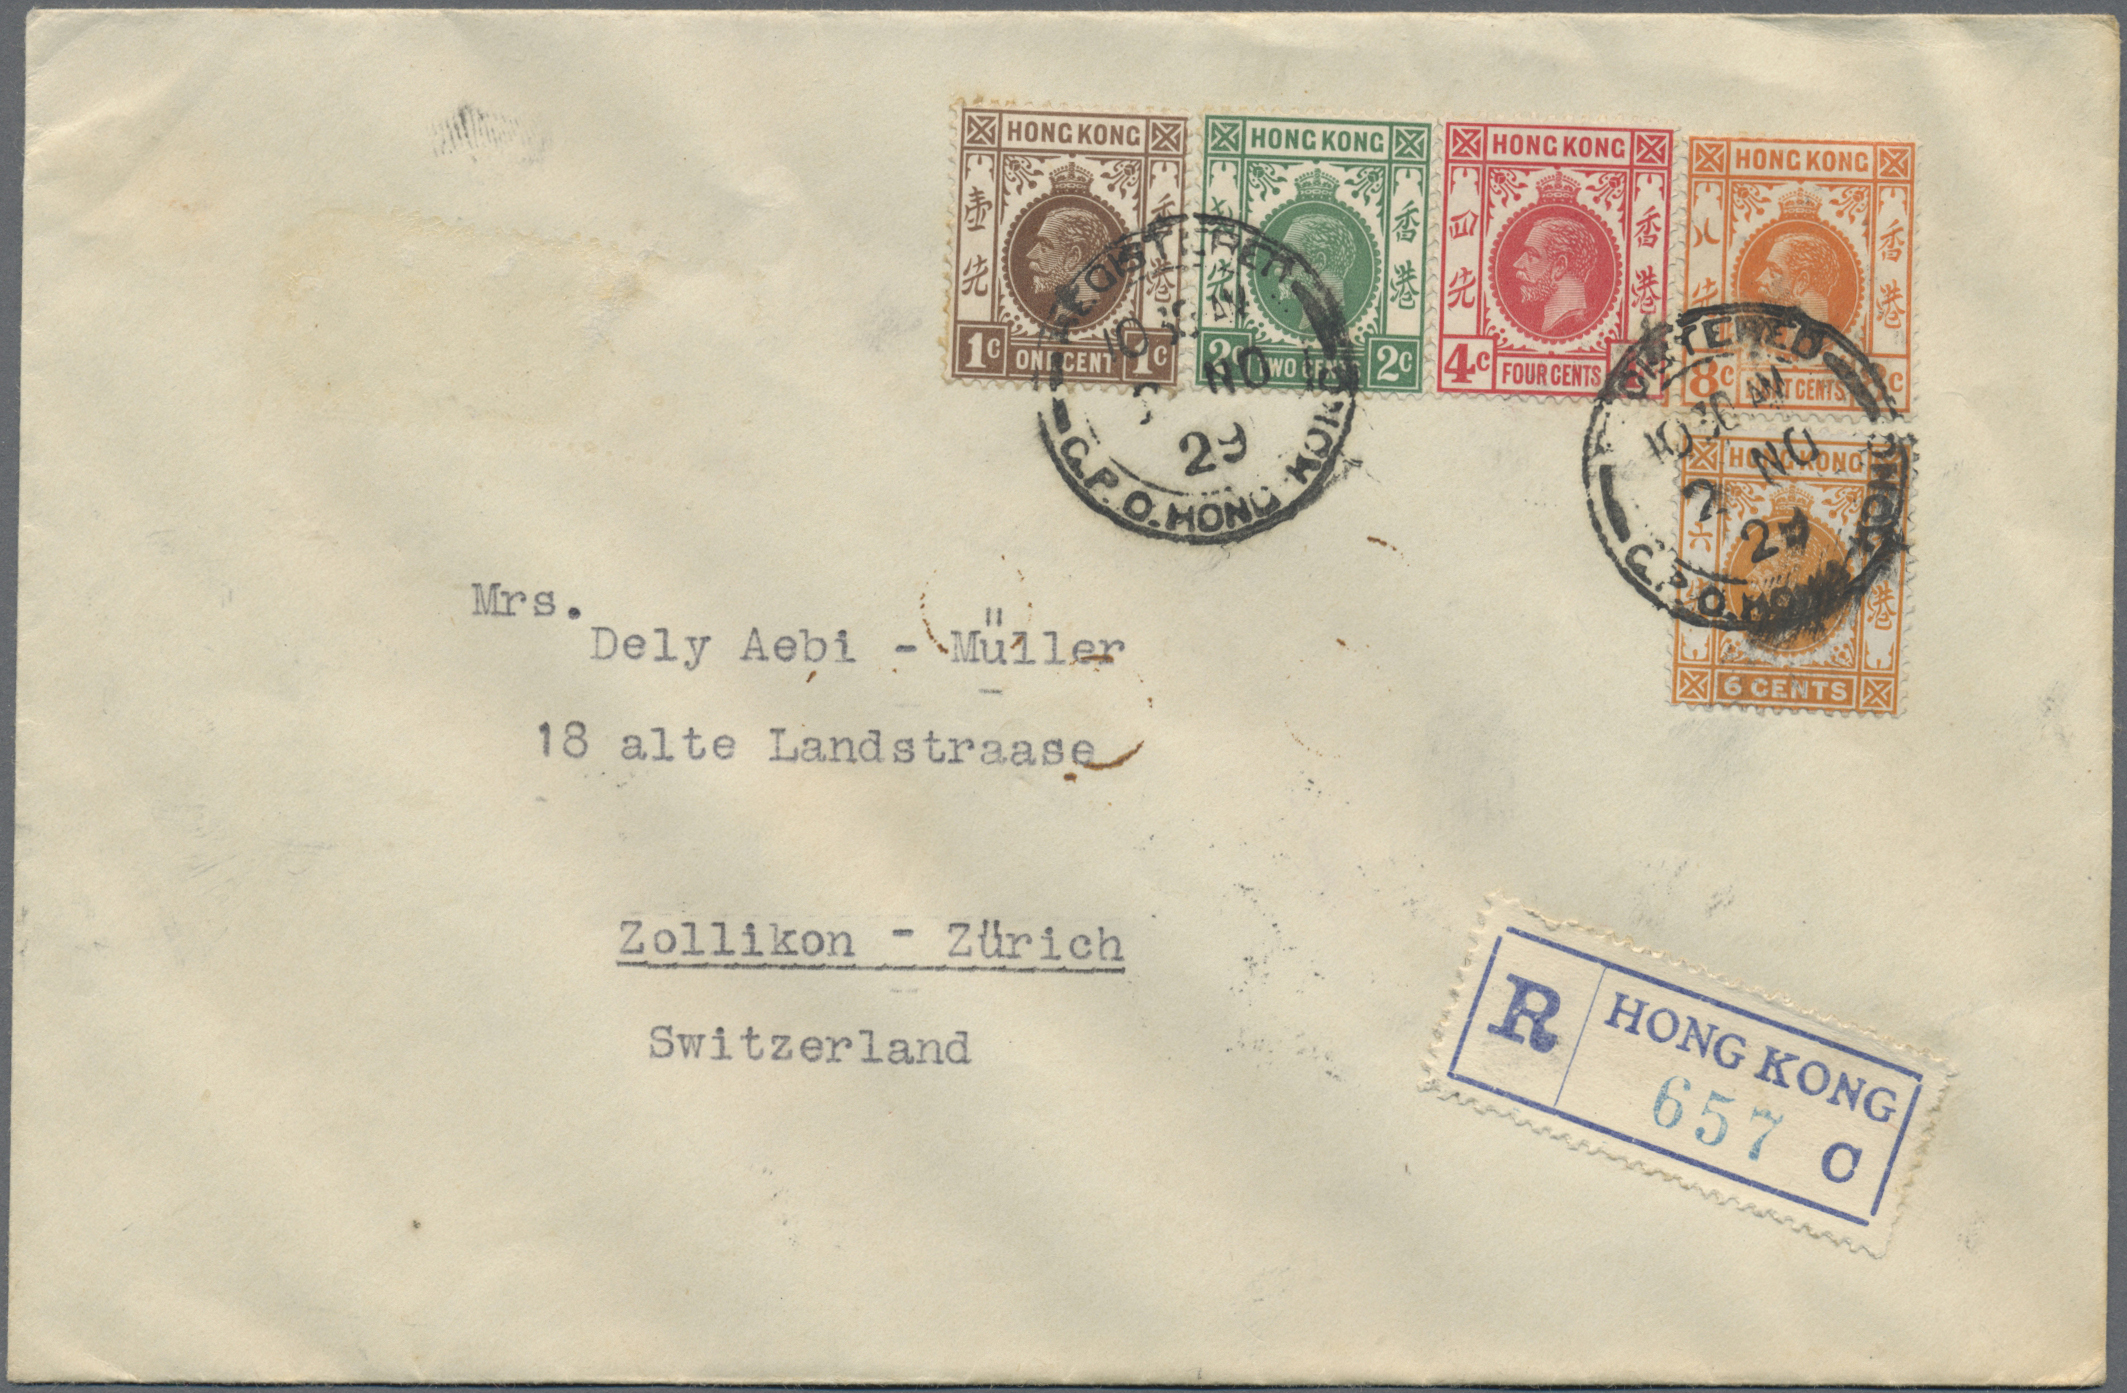 Lot 34659 - hongkong  -  Auktionshaus Christoph Gärtner GmbH & Co. KG Sale #44 Collections Germany